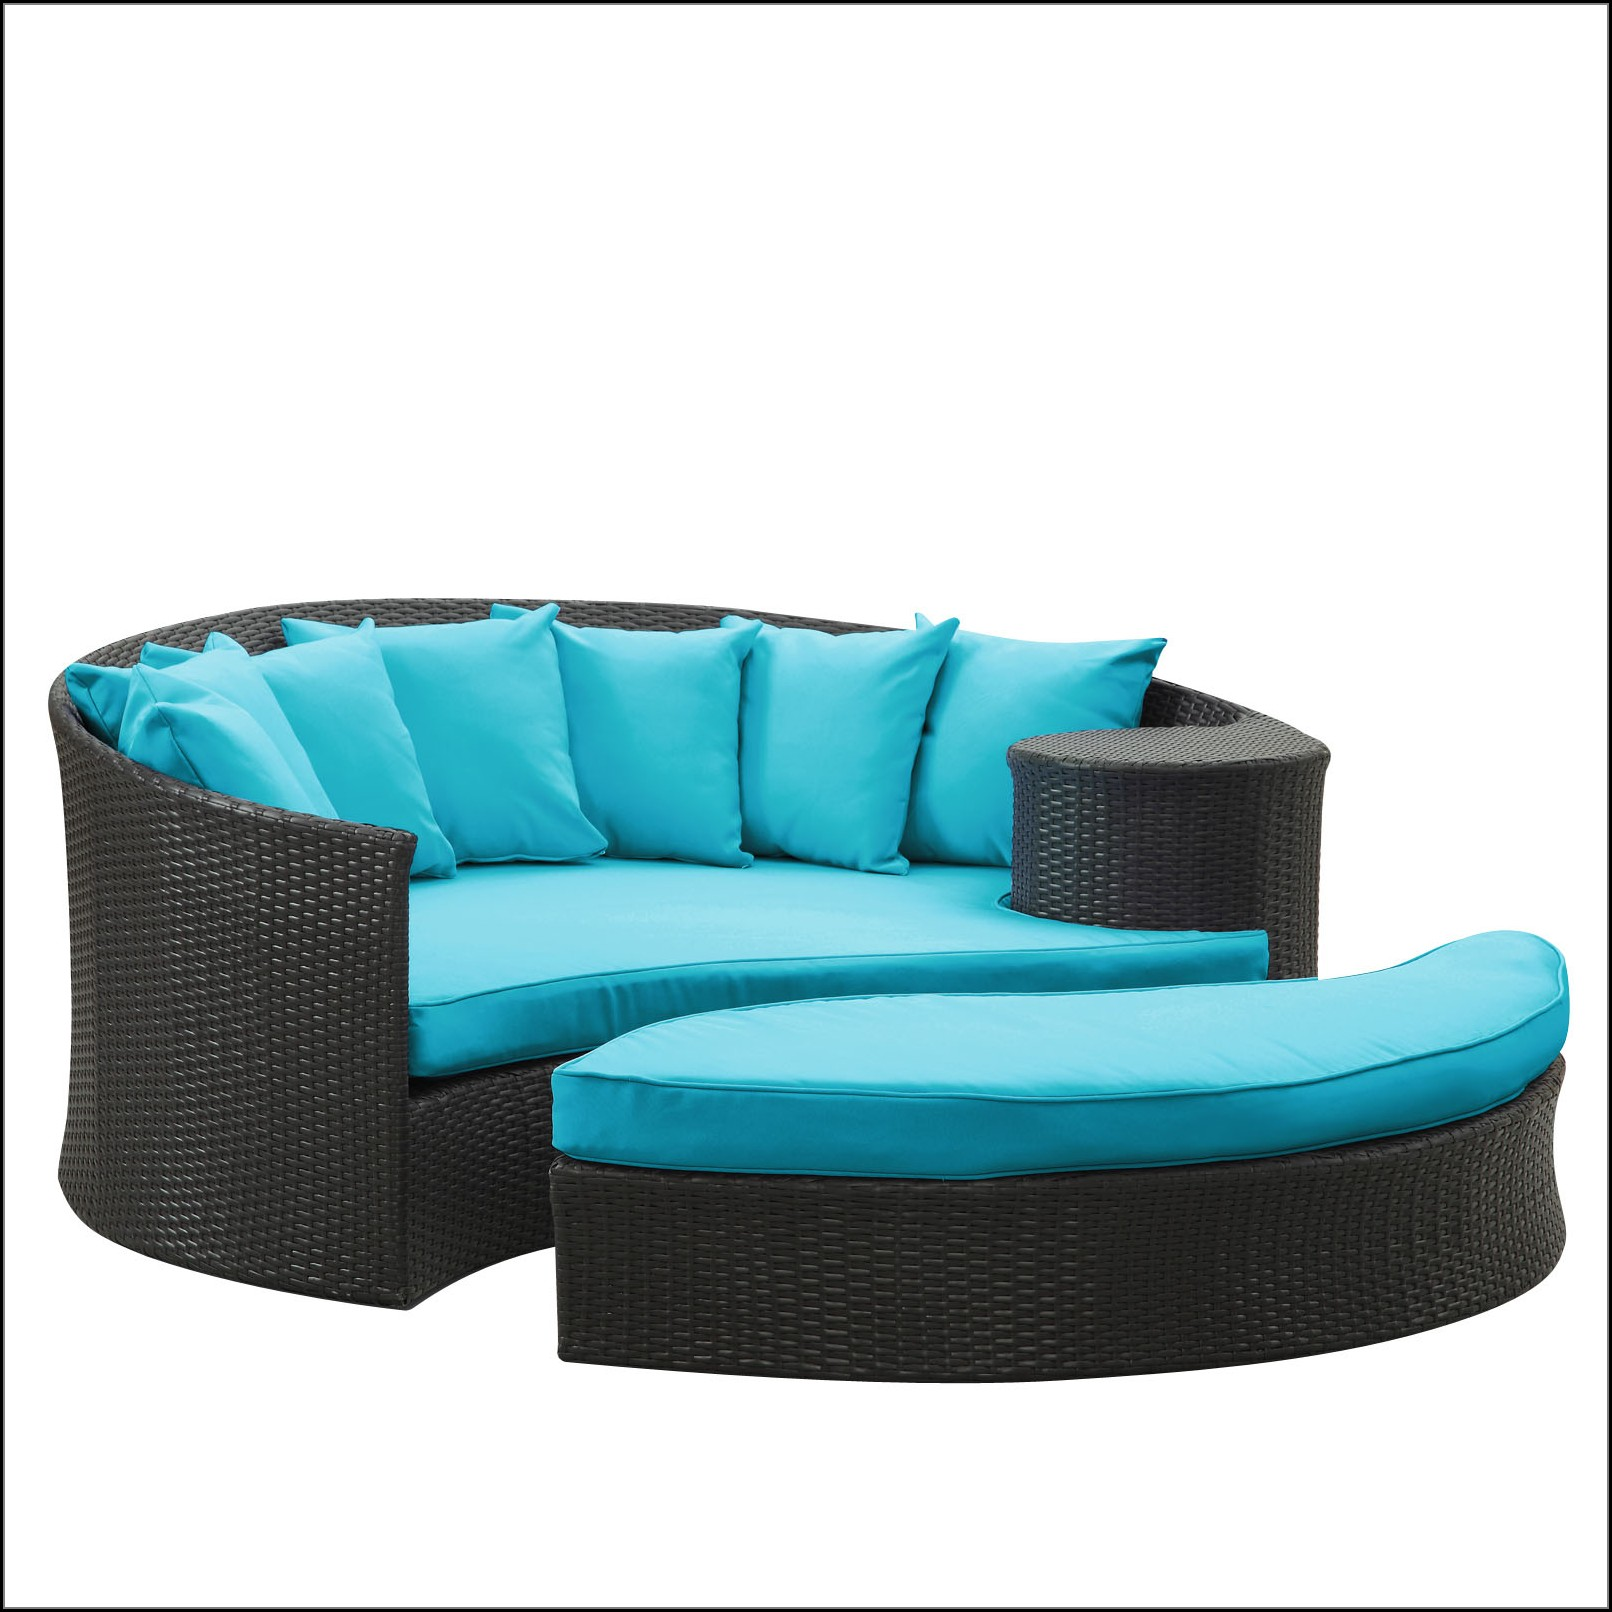 Taiji Outdoor Patio Daybed In Espresso Turquoise